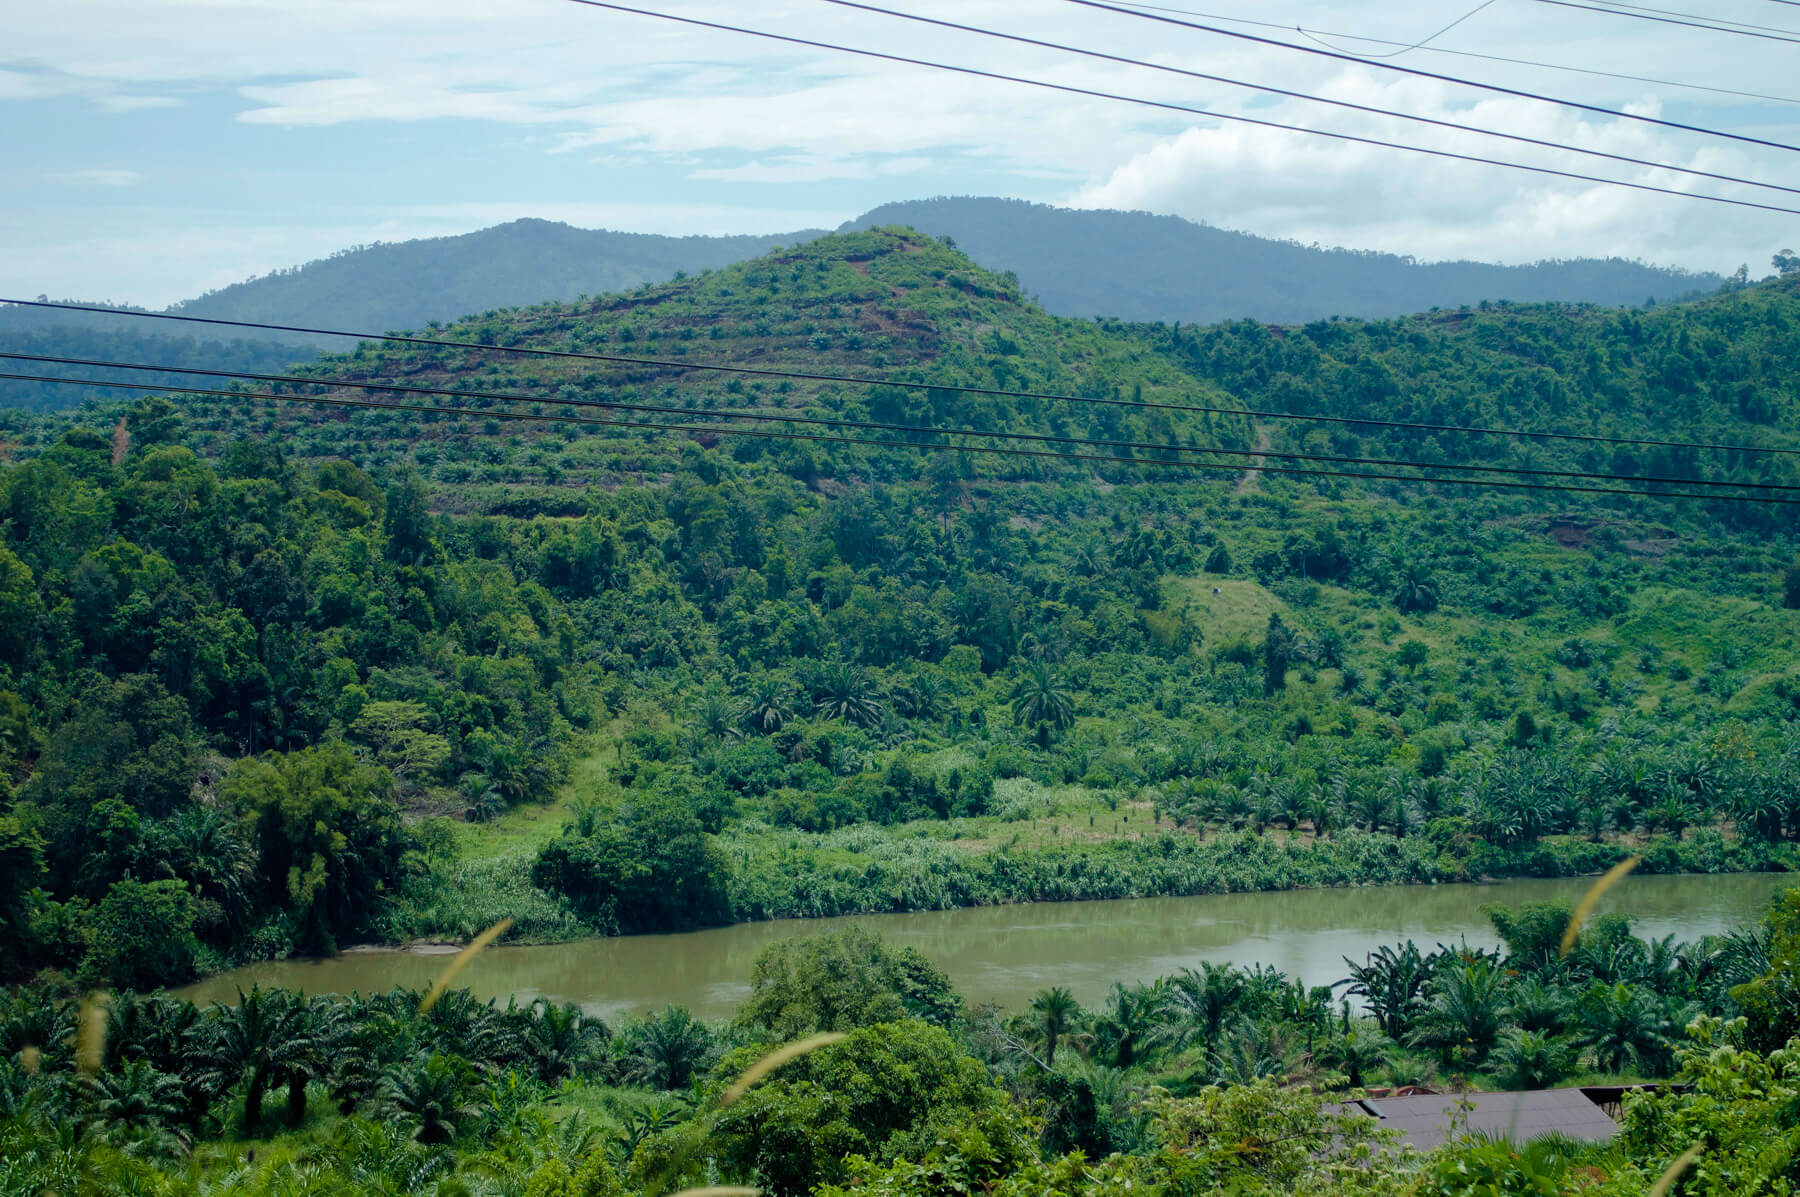 A palm oil plantation covering either side of the river